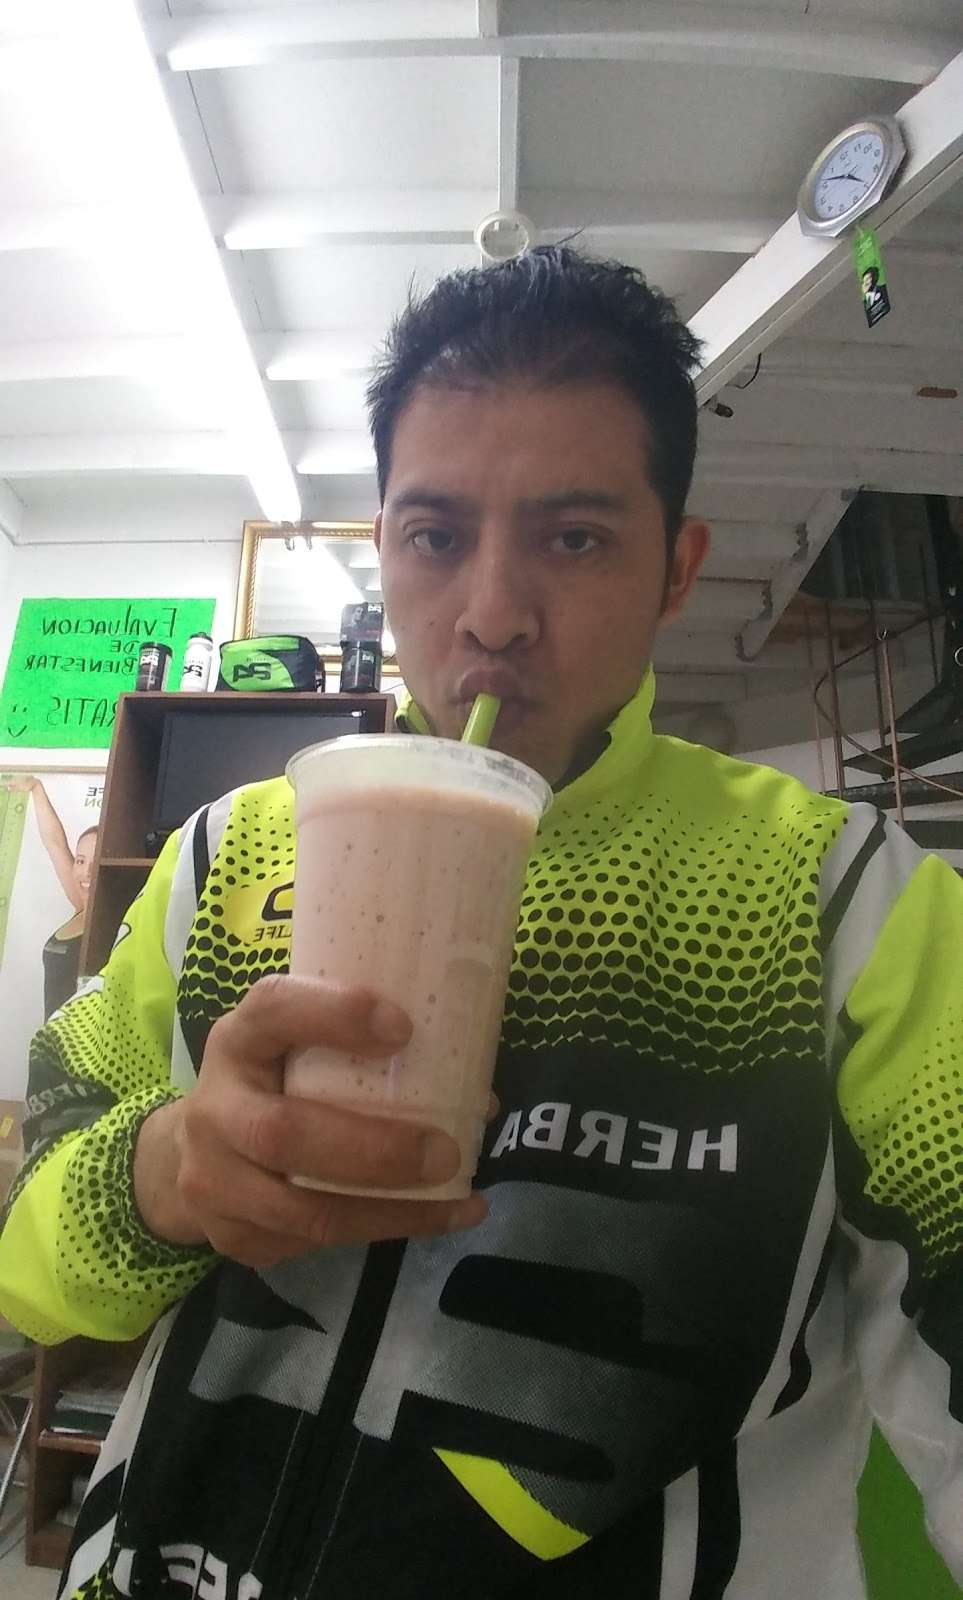 DISTRIBUDOR INDEPENDIENTE DE HERBALIFE PABLO HUEYOPA - store  | Photo 6 of 10 | Address: 462A 36th St, Brooklyn, NY 11232, USA | Phone: (718) 781-7329